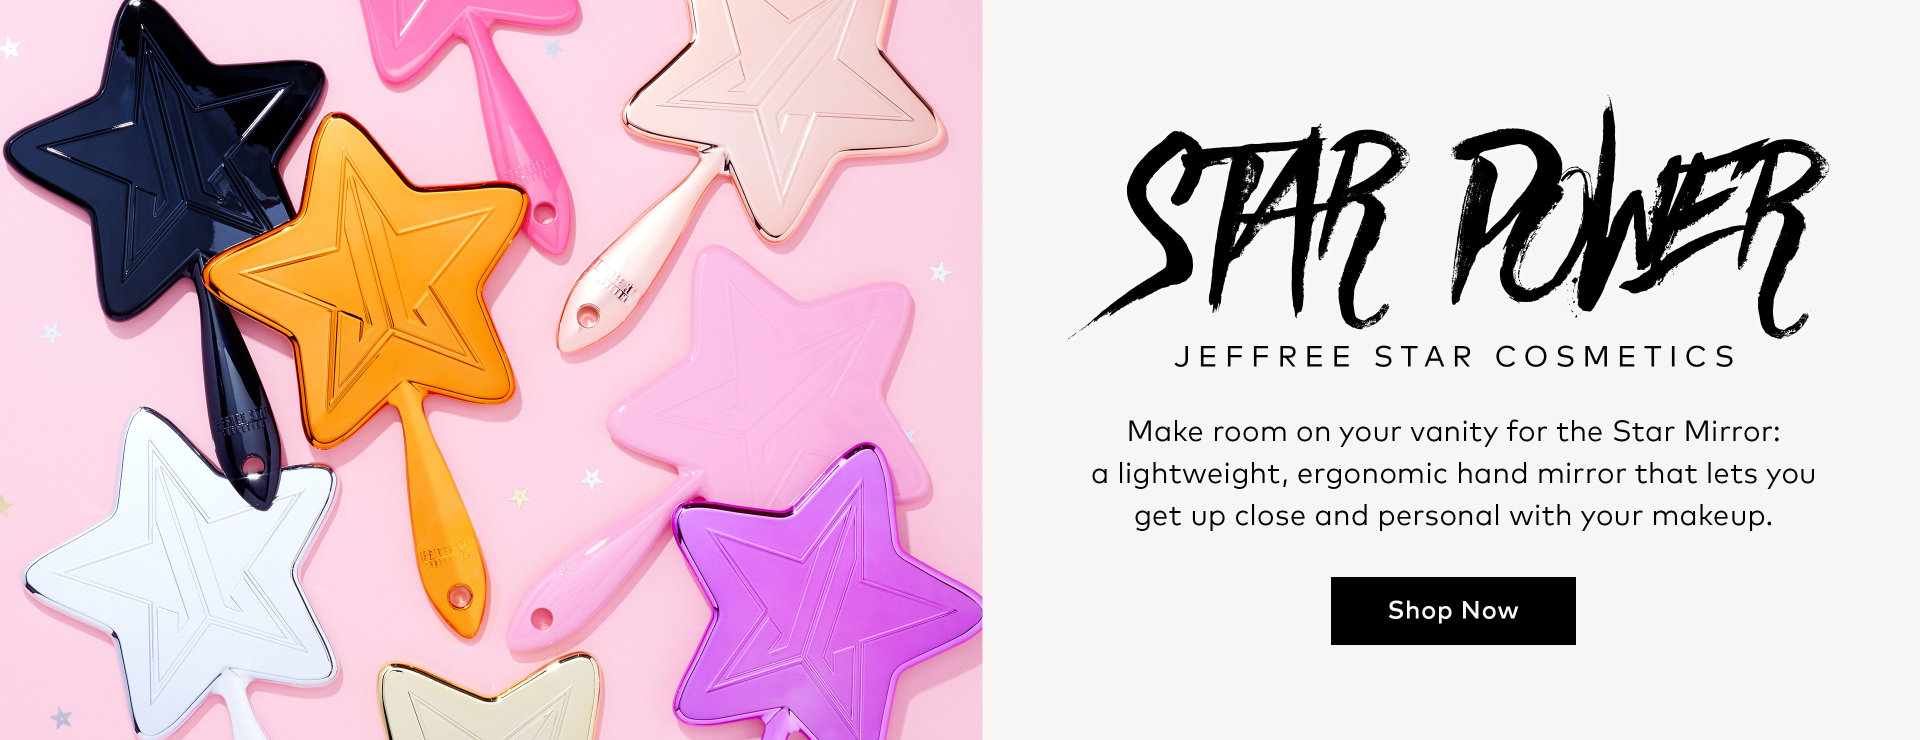 Shop Jeffree Star Cosmetics' Star Mirrors on Beautylish.com